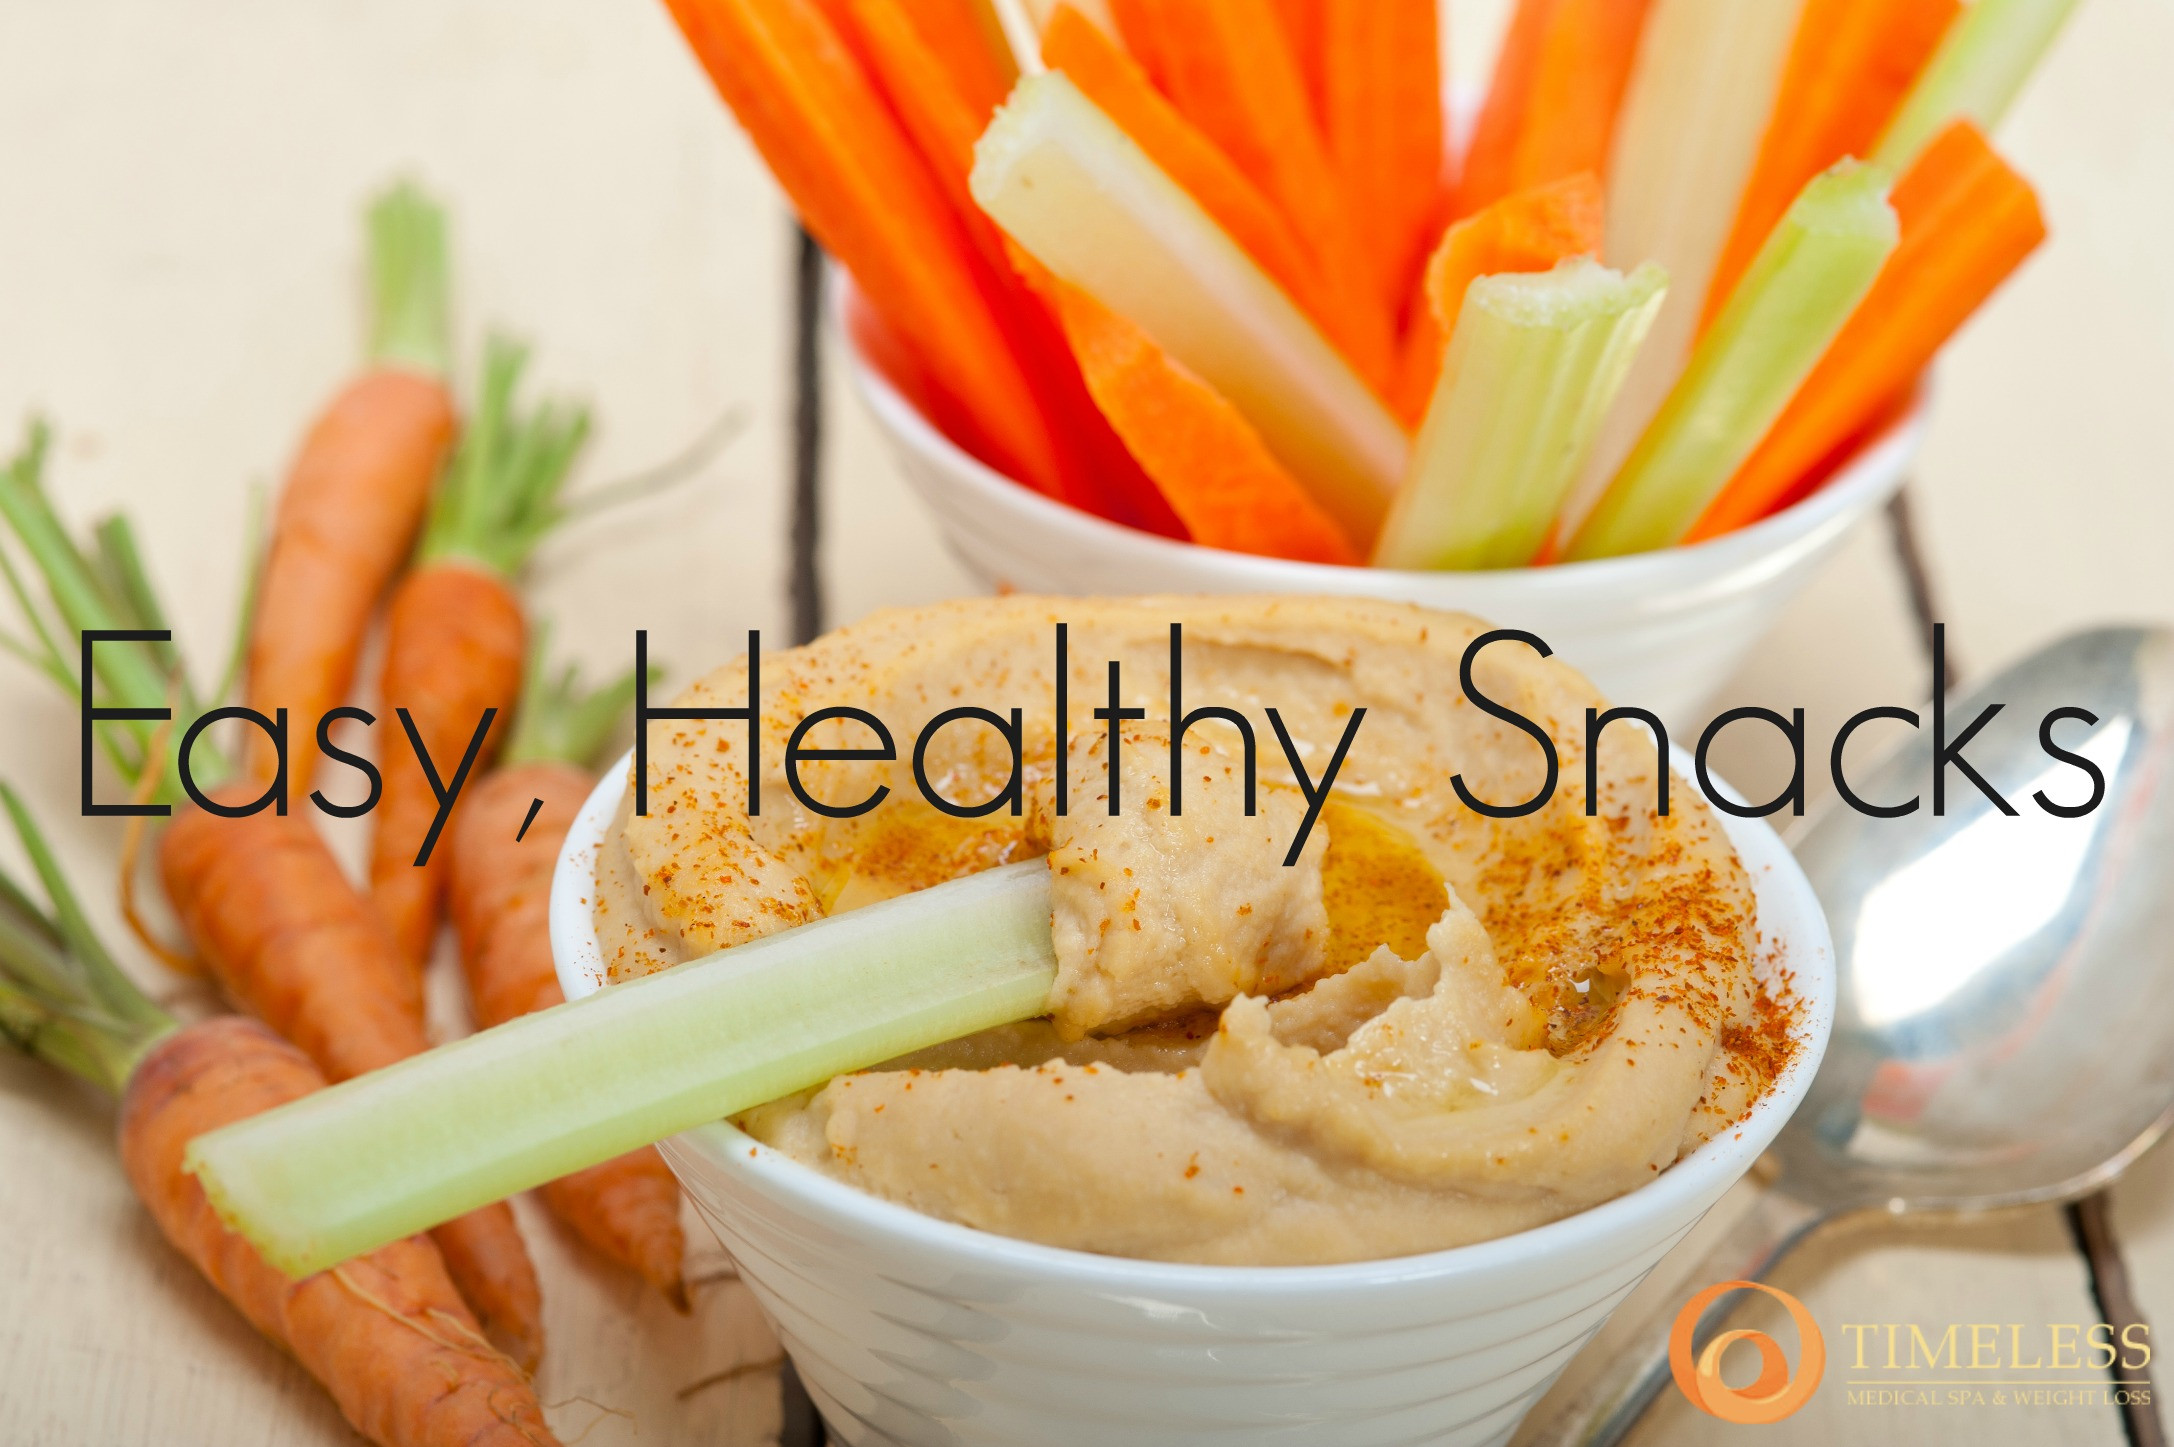 Easy To Make Healthy Snacks  Easy Healthy Snack Ideas TimeLess Weight Loss Blog